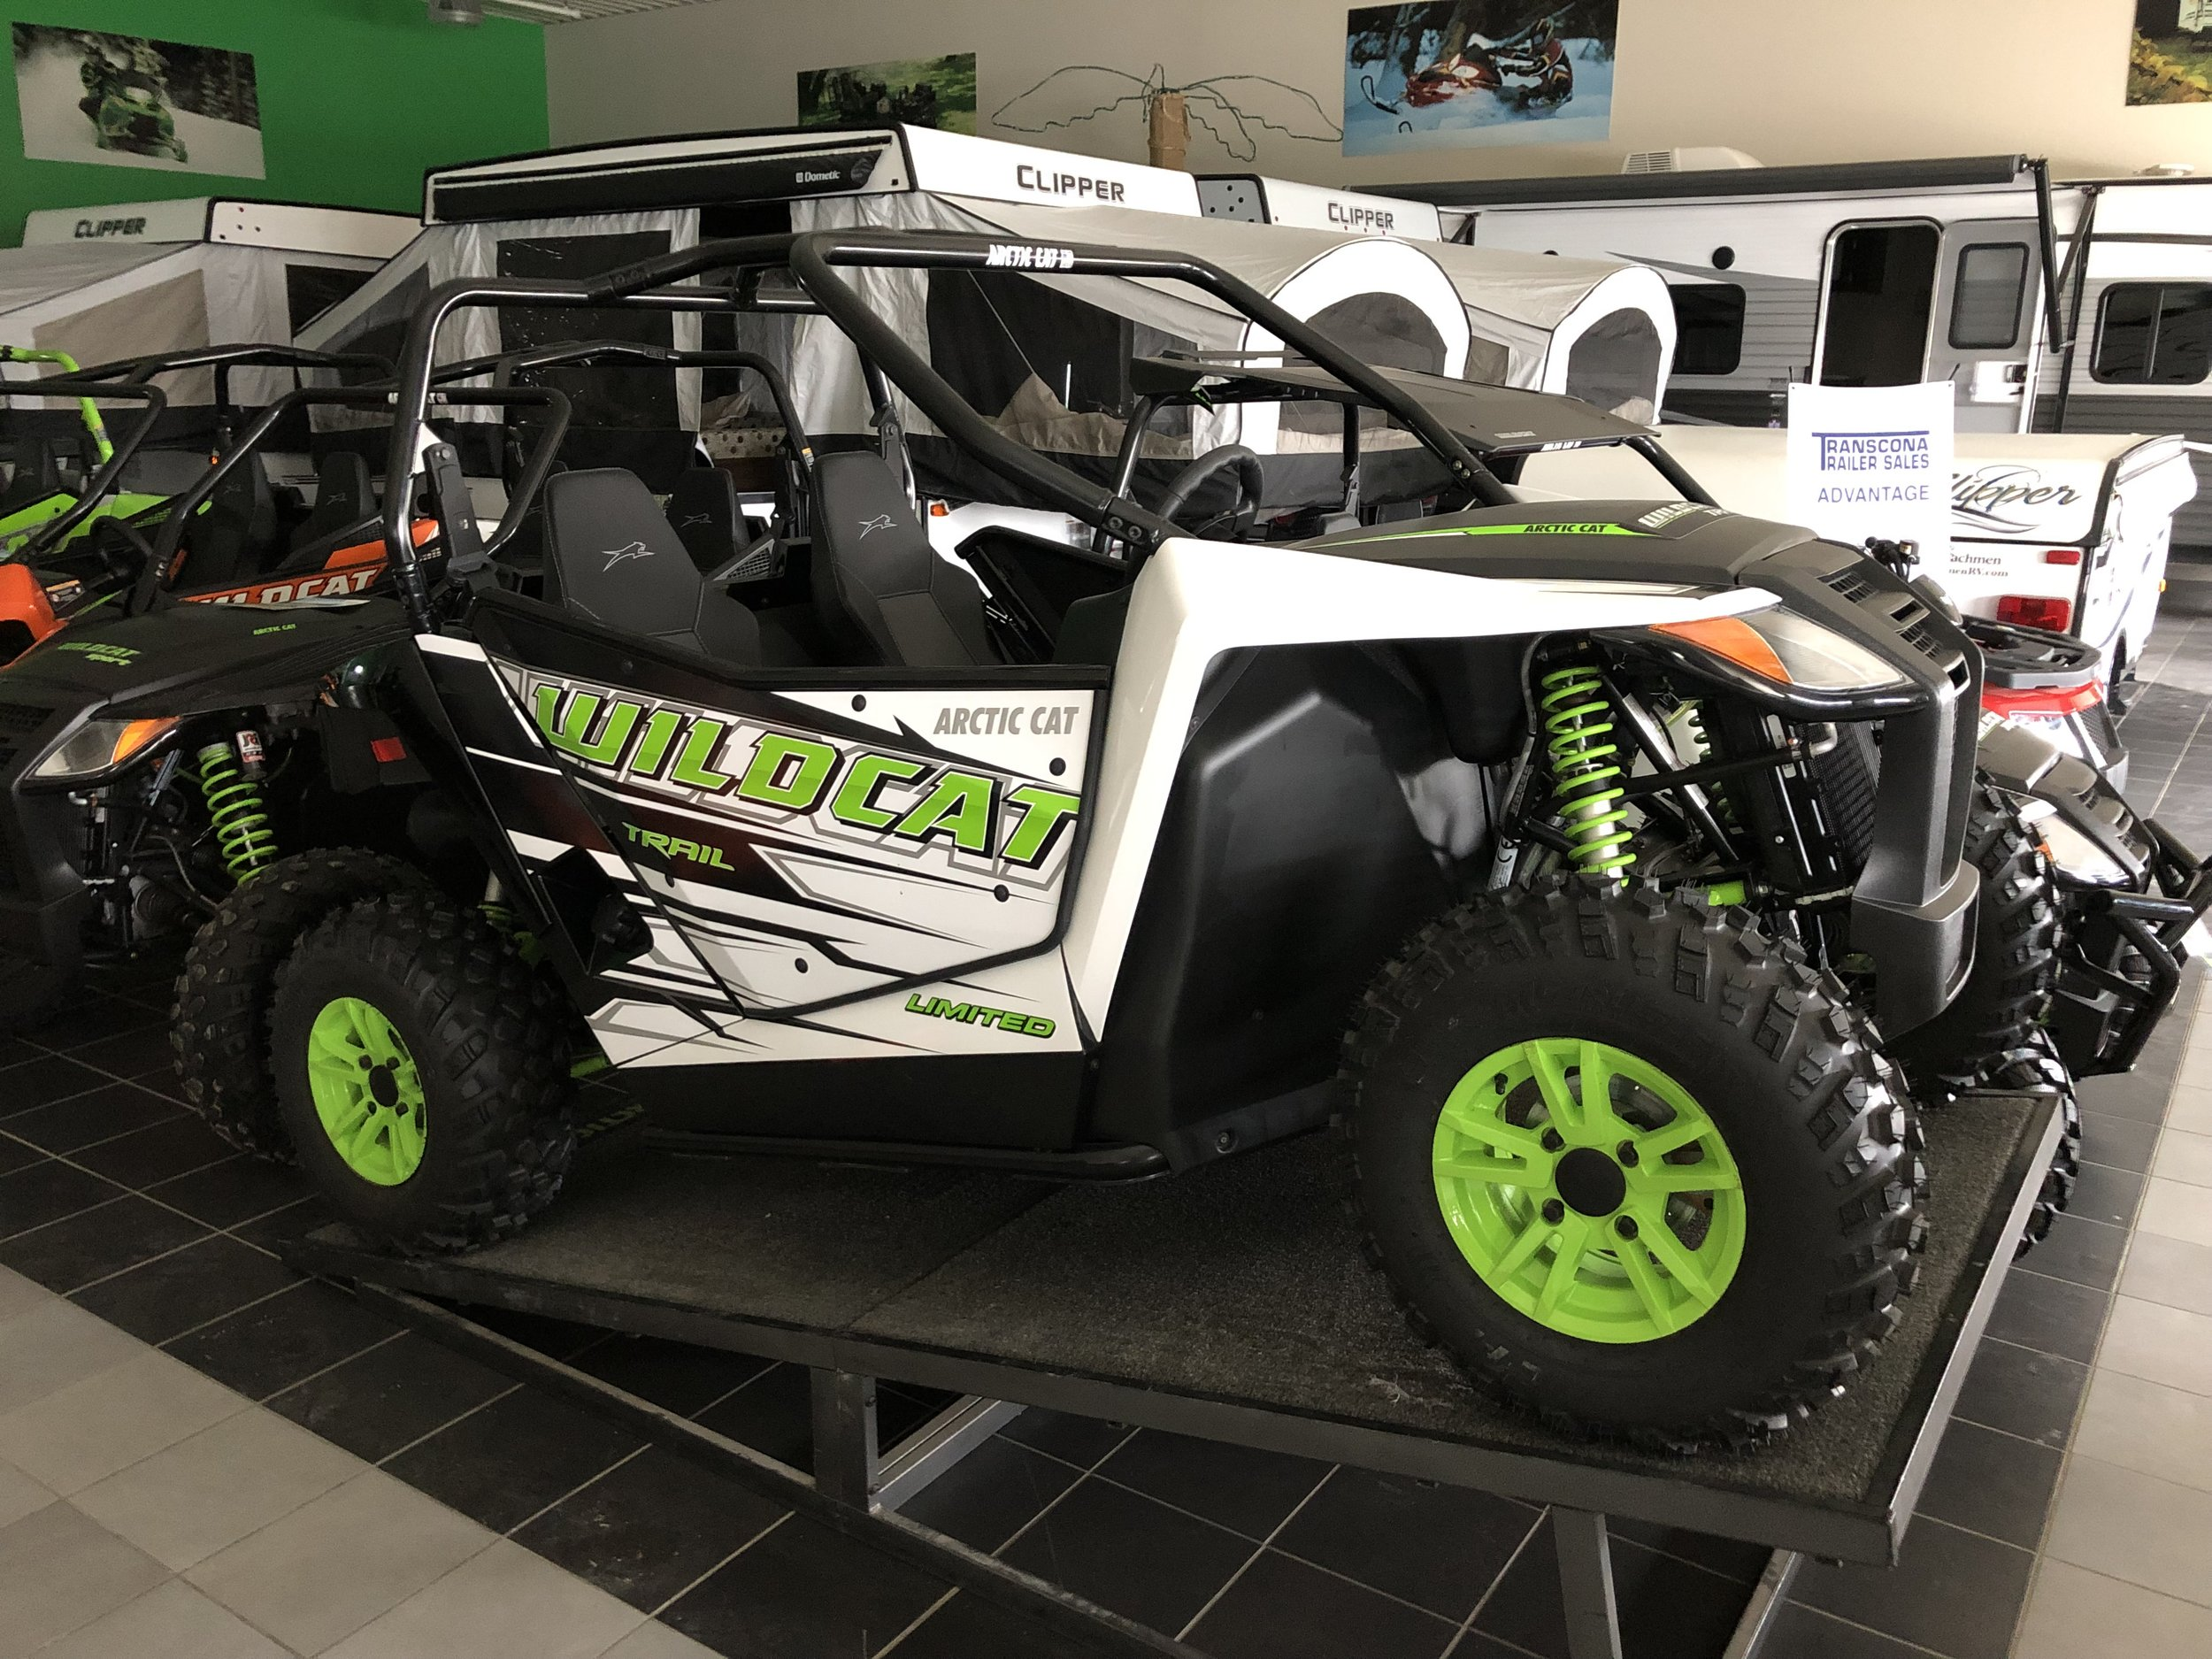 Off road vehicles - Store marijuana in an exterior compartment or a bag that you cannot access quickly